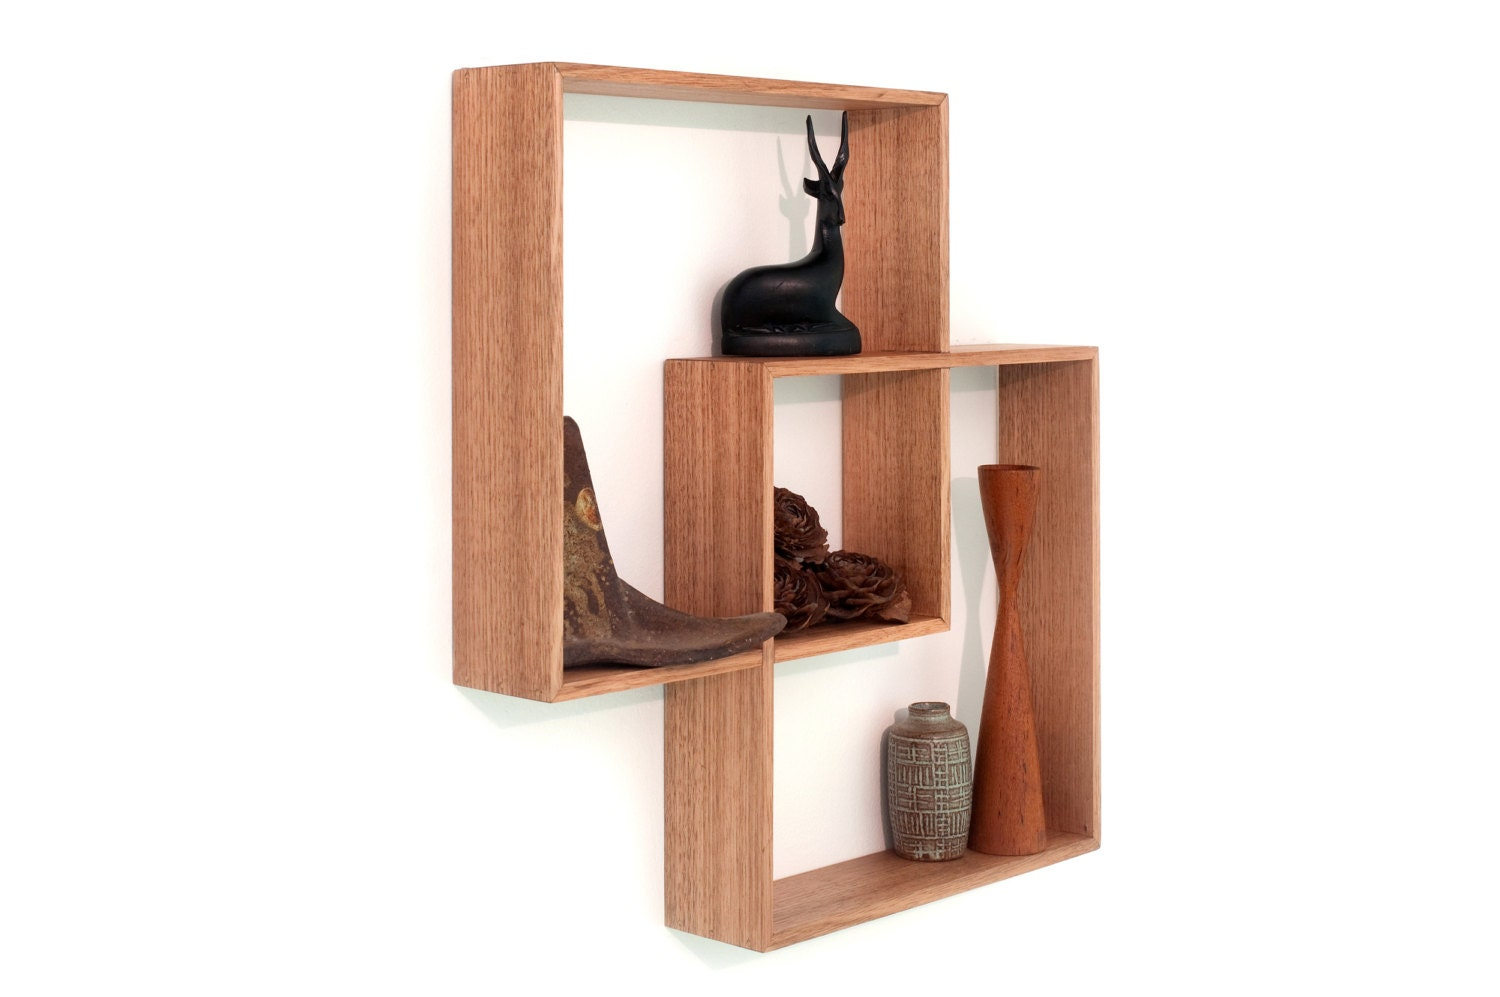 2 shadow box to display your treasures wall hanging shelf wood. Black Bedroom Furniture Sets. Home Design Ideas